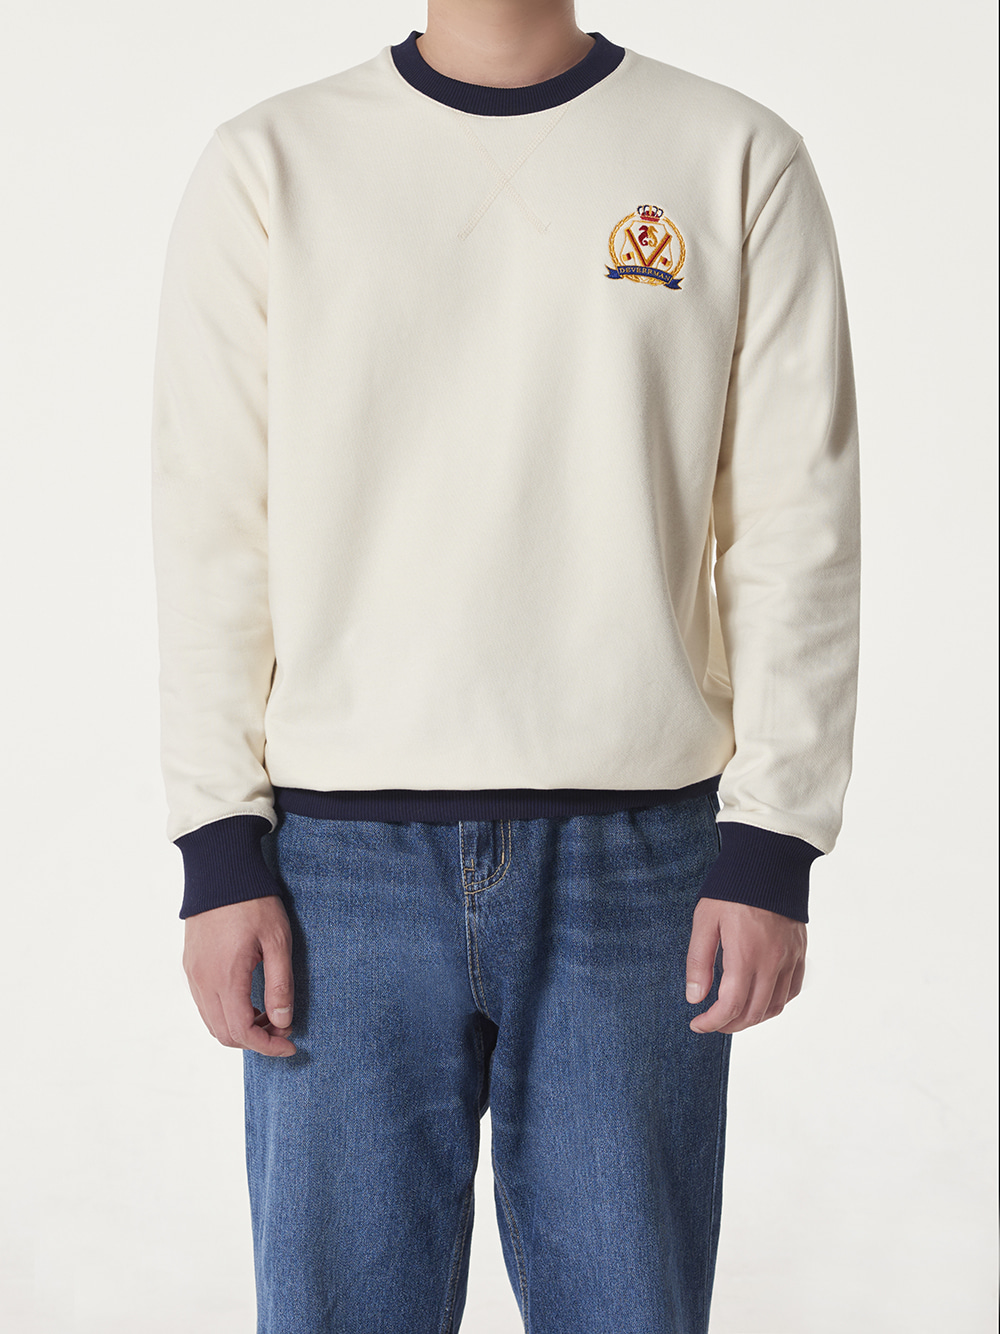 -[Deverrman] emblem sweat shirt (ivory)